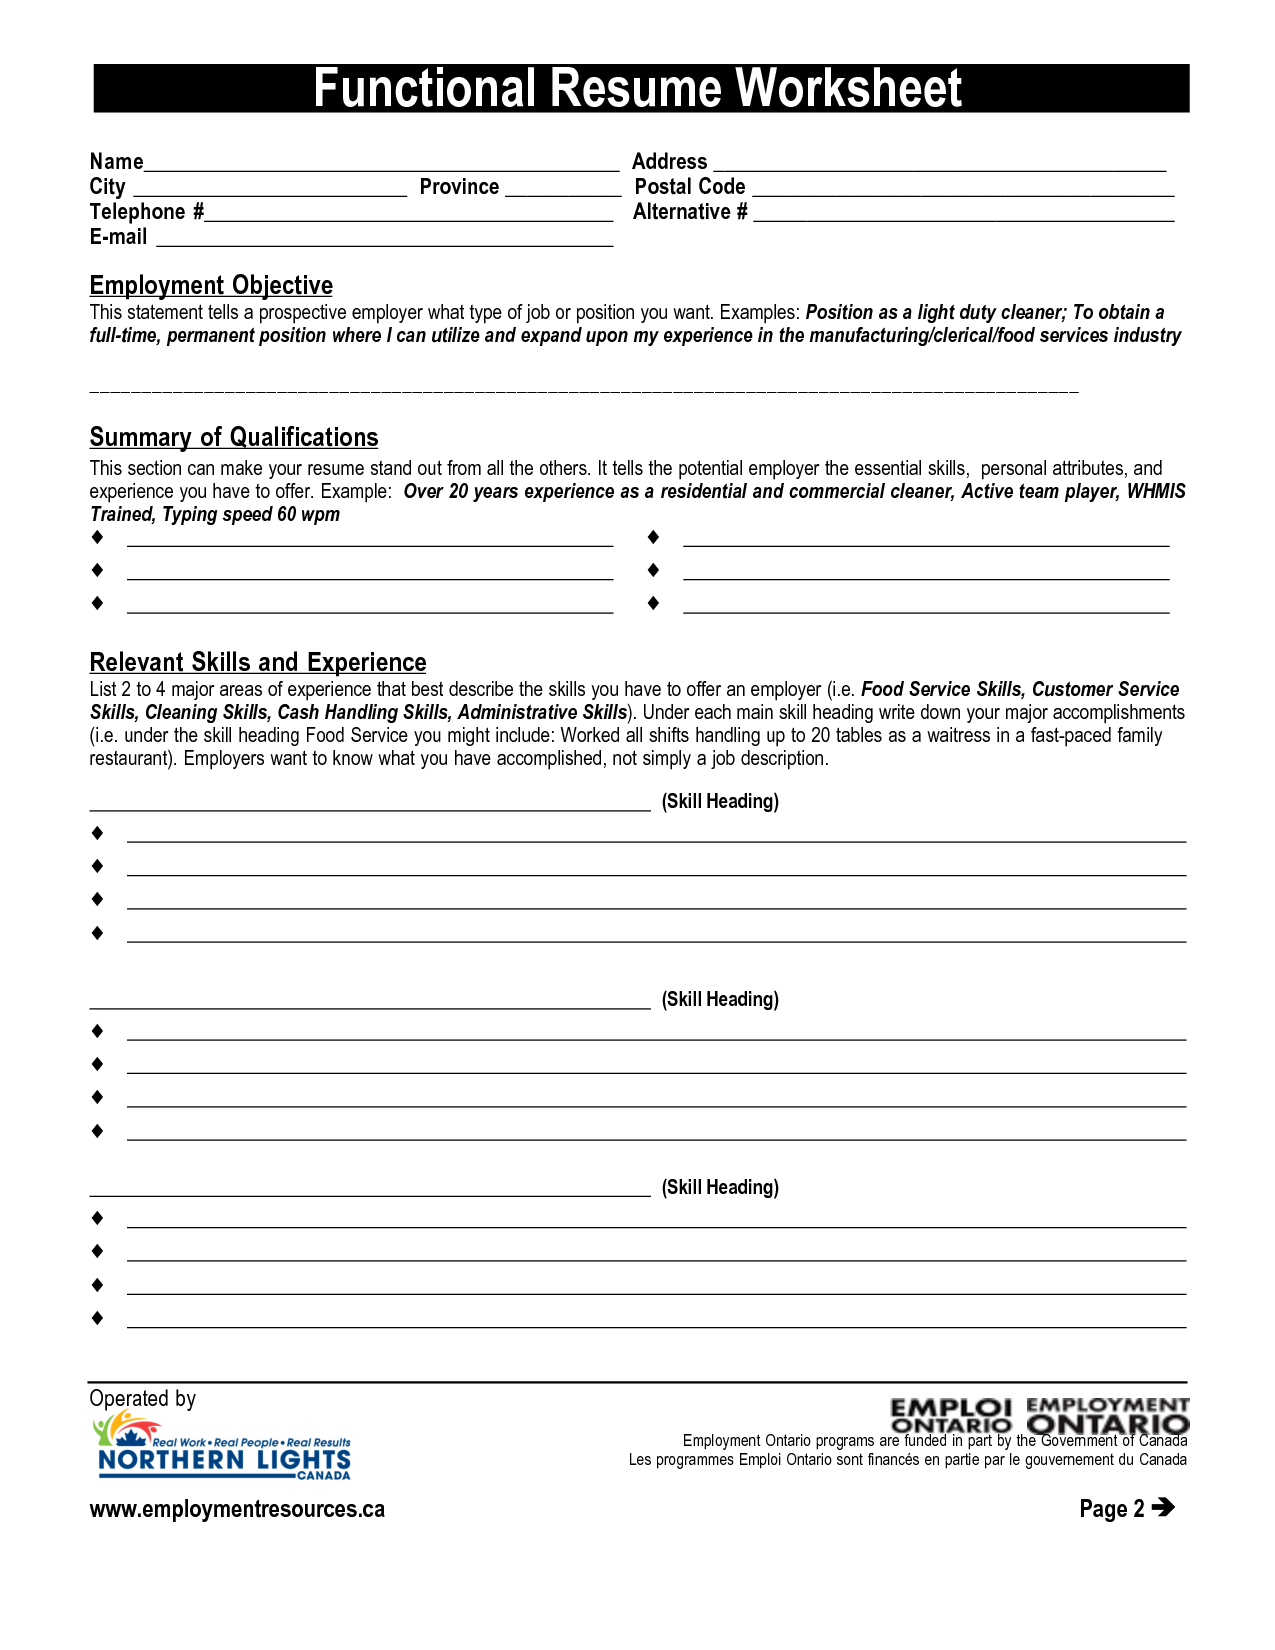 resume worksheet printable and high school template building ...